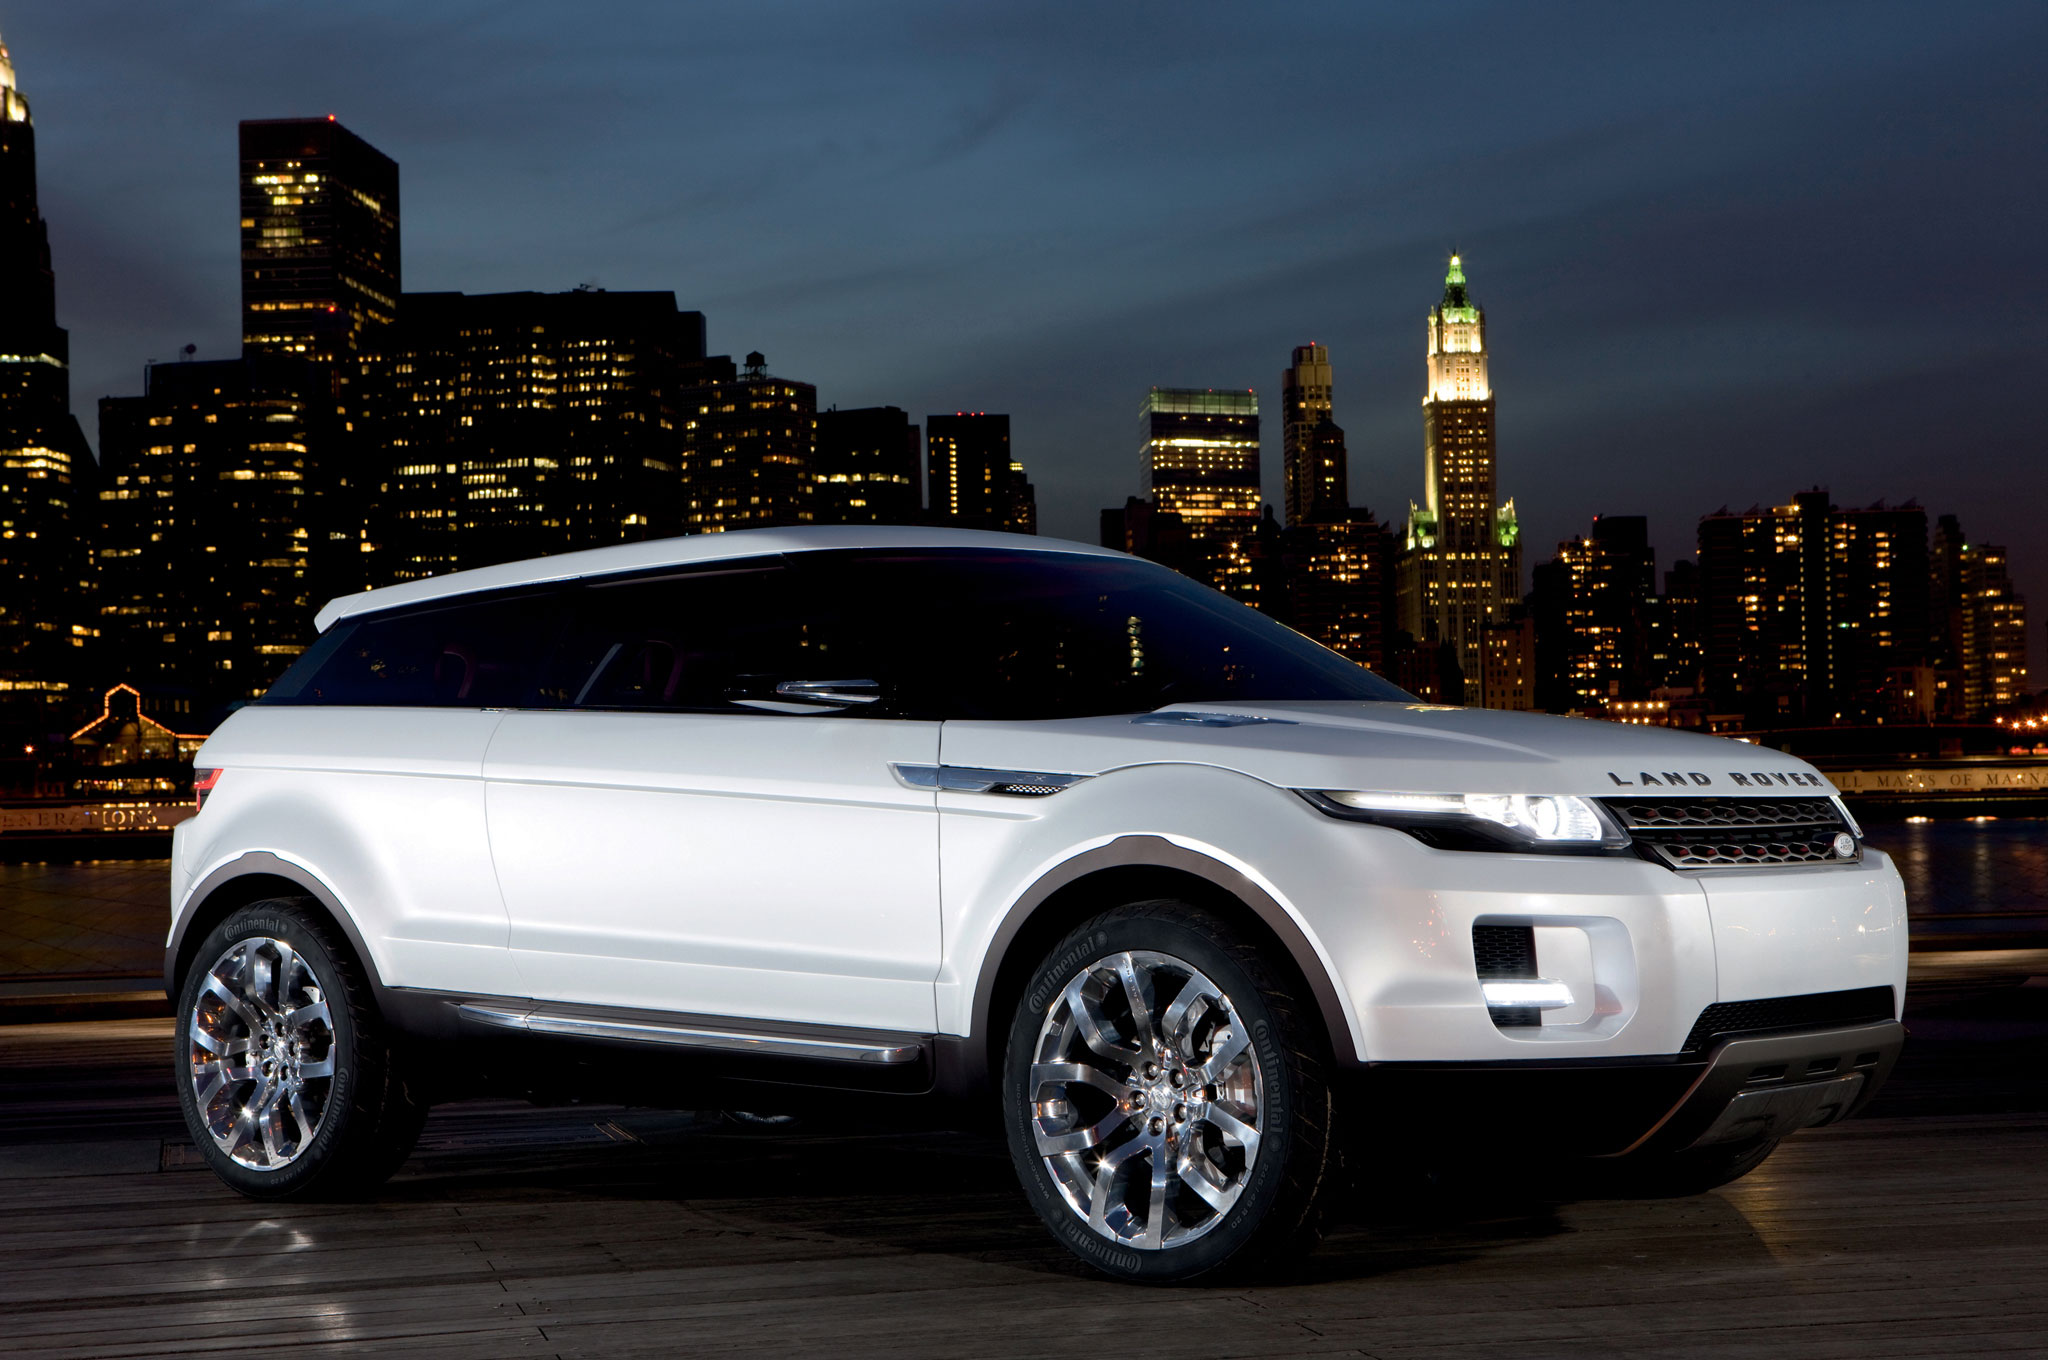 2012 Land Rover Range Rover Evoque Four Seasons Wrap Up